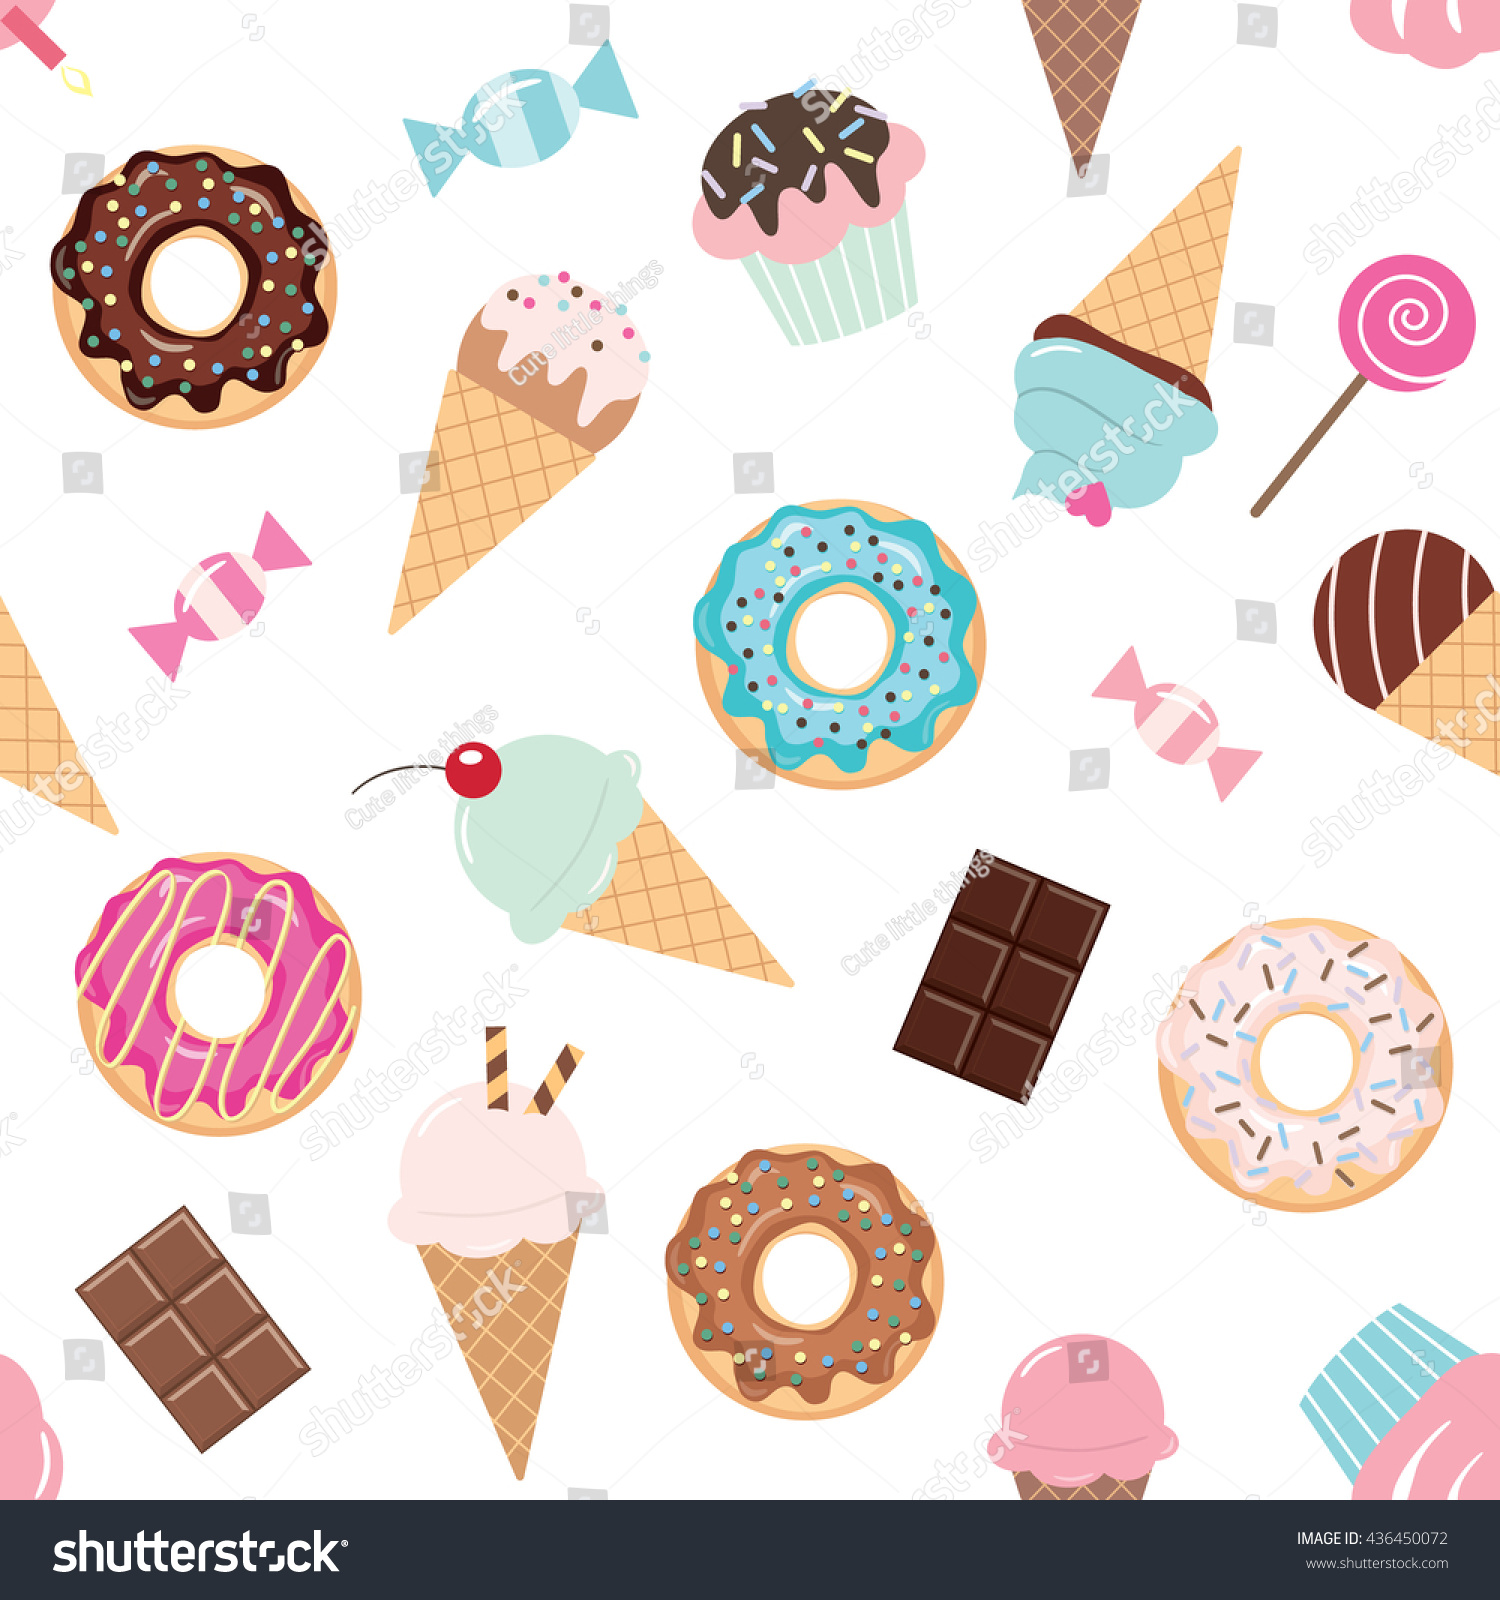 Sweet Ice Cream Flat Colorful Seamless Pattern Vector: Birthday Seamless Pattern Sweets Ice Cream Stock Vector